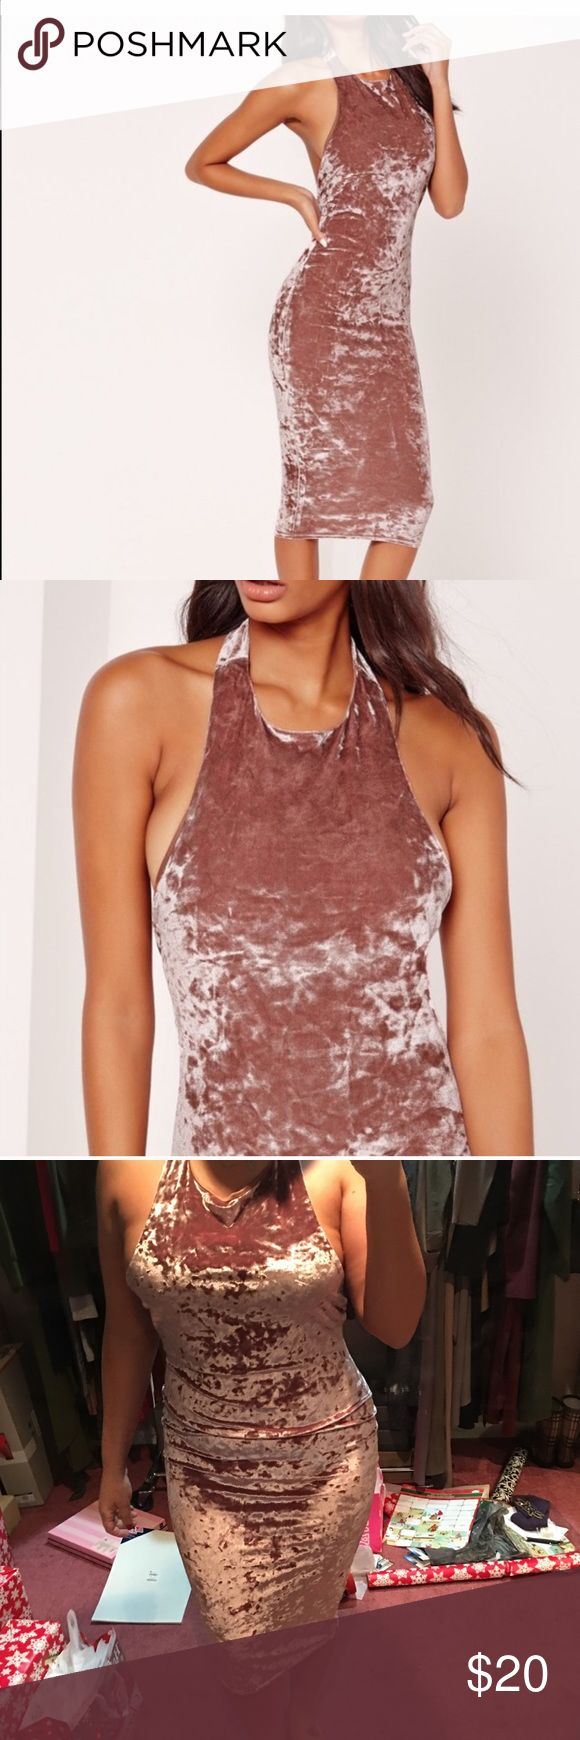 Missguided pink velvet dress Brand new with out tags. Great dress just don't like it in myself. Missguided Dresses